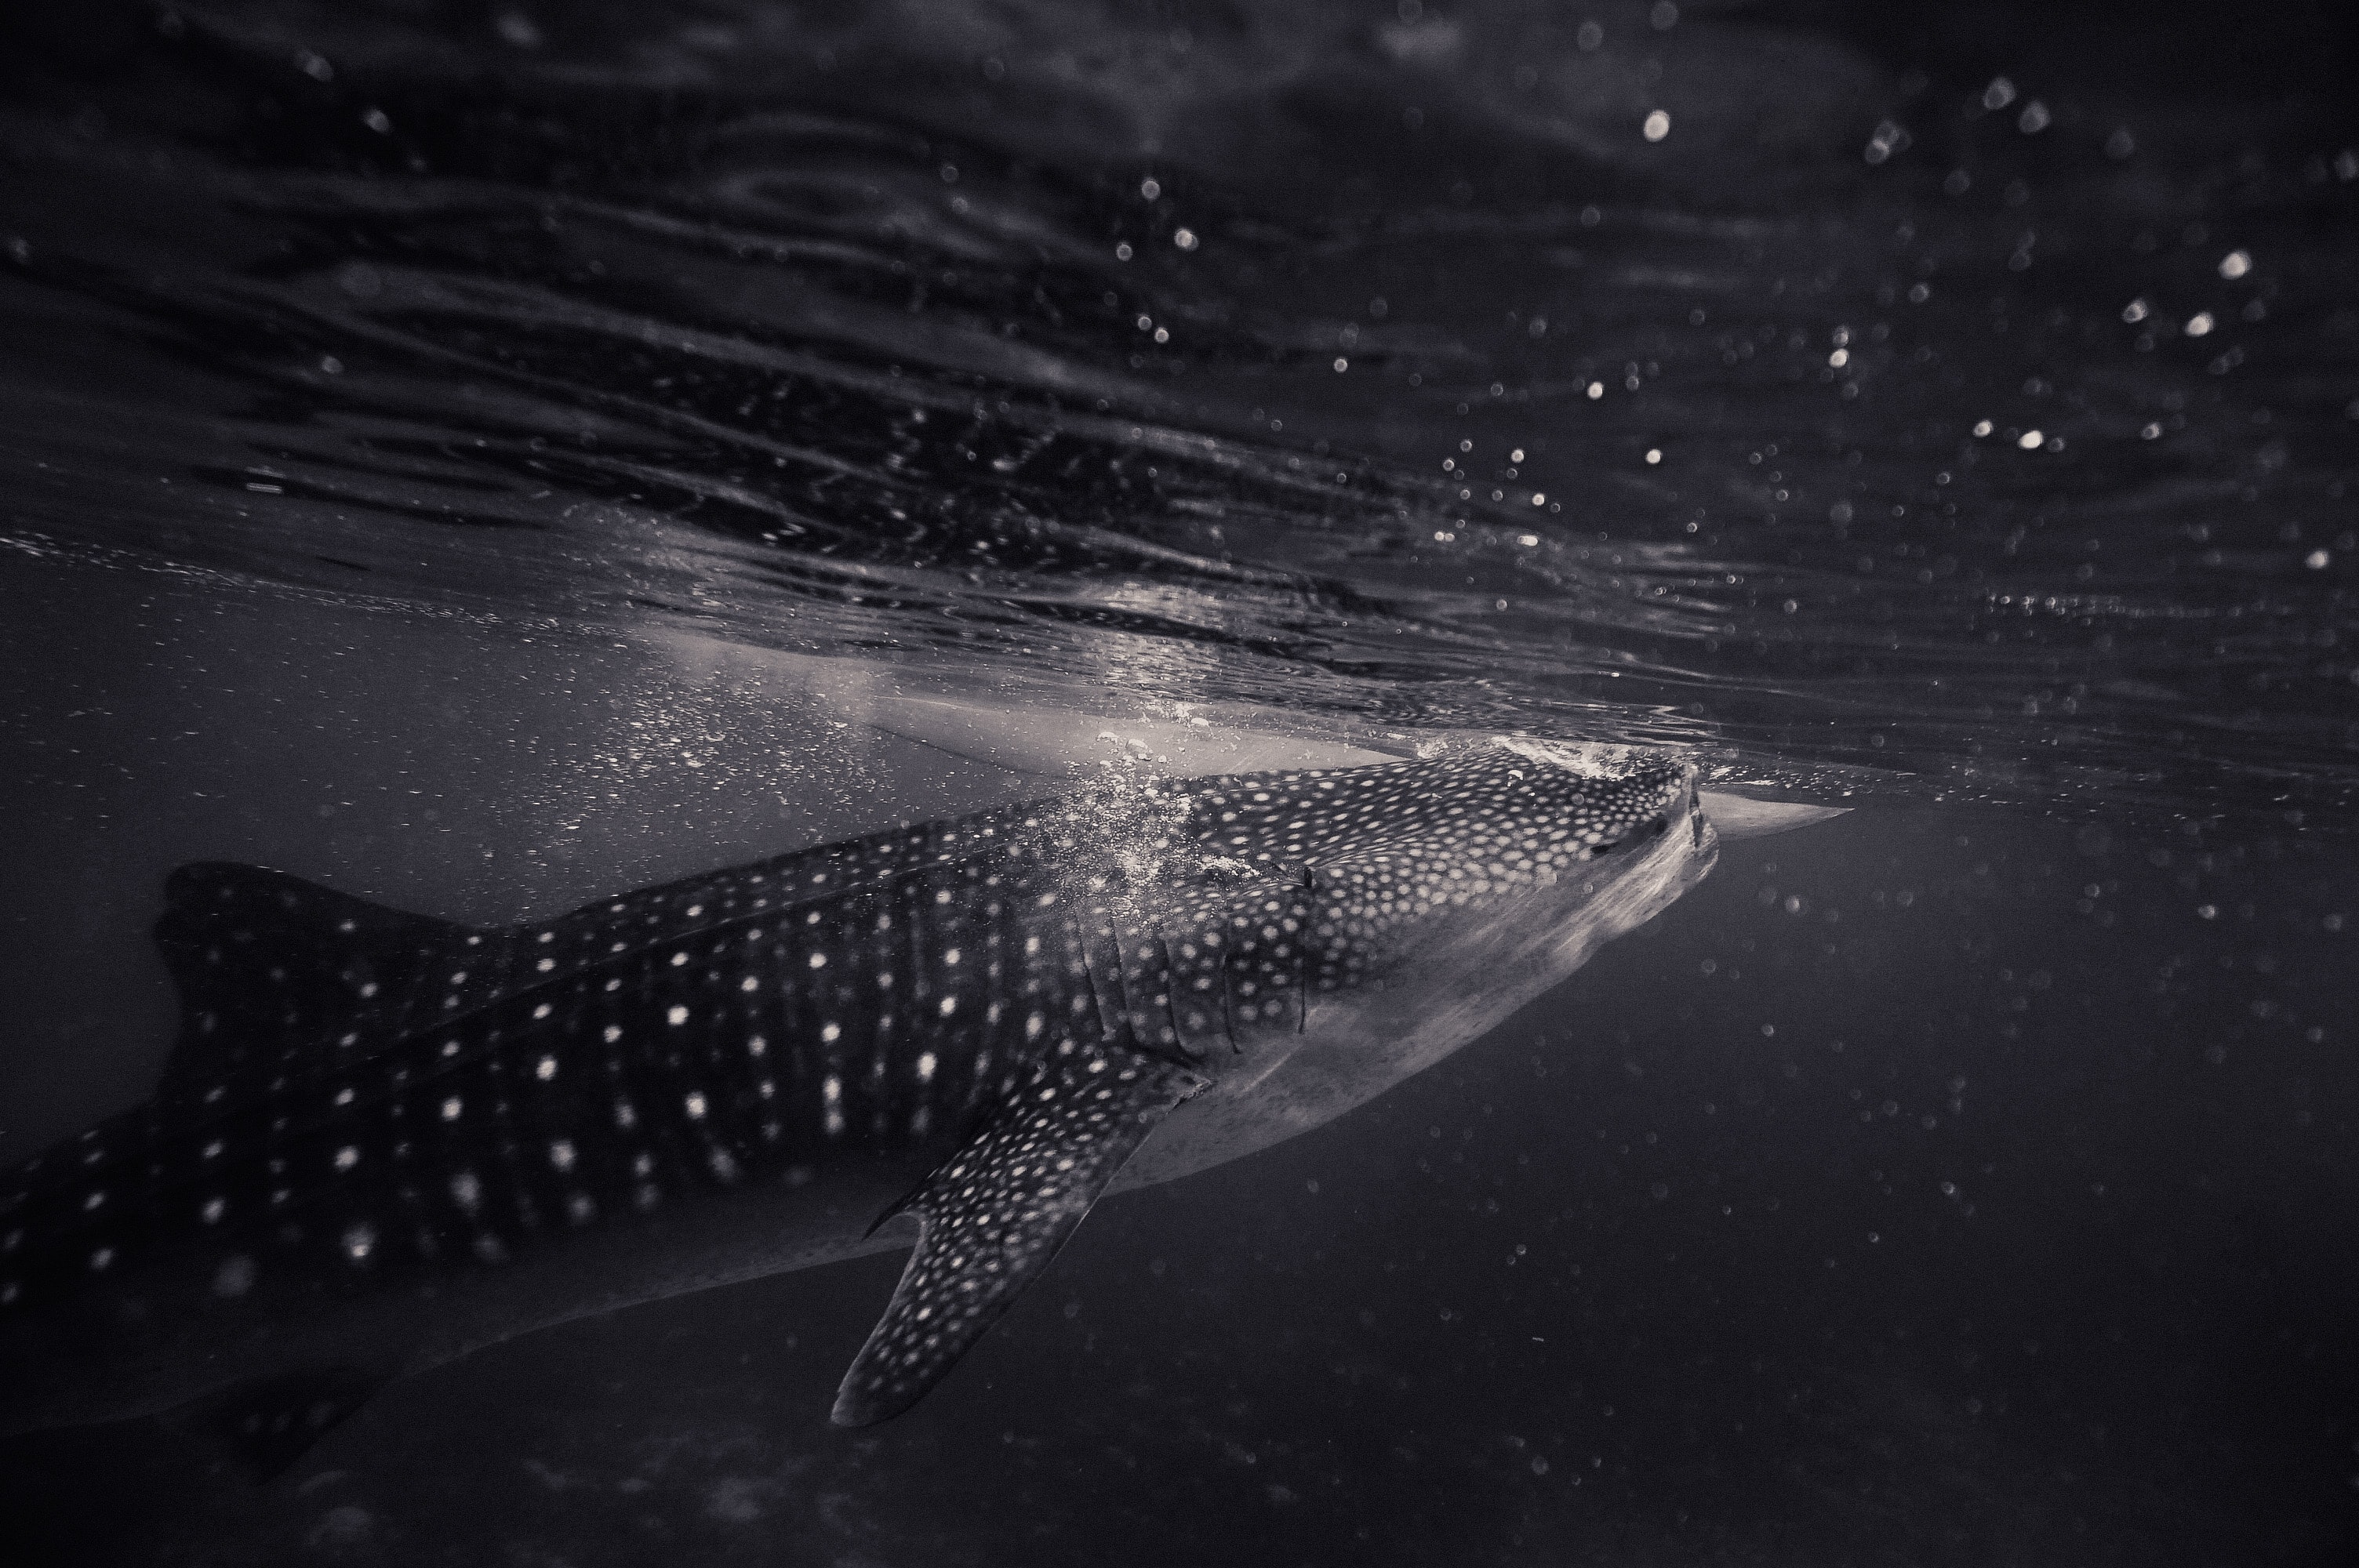 Black and white shot of shark swimming underwater with bubbles